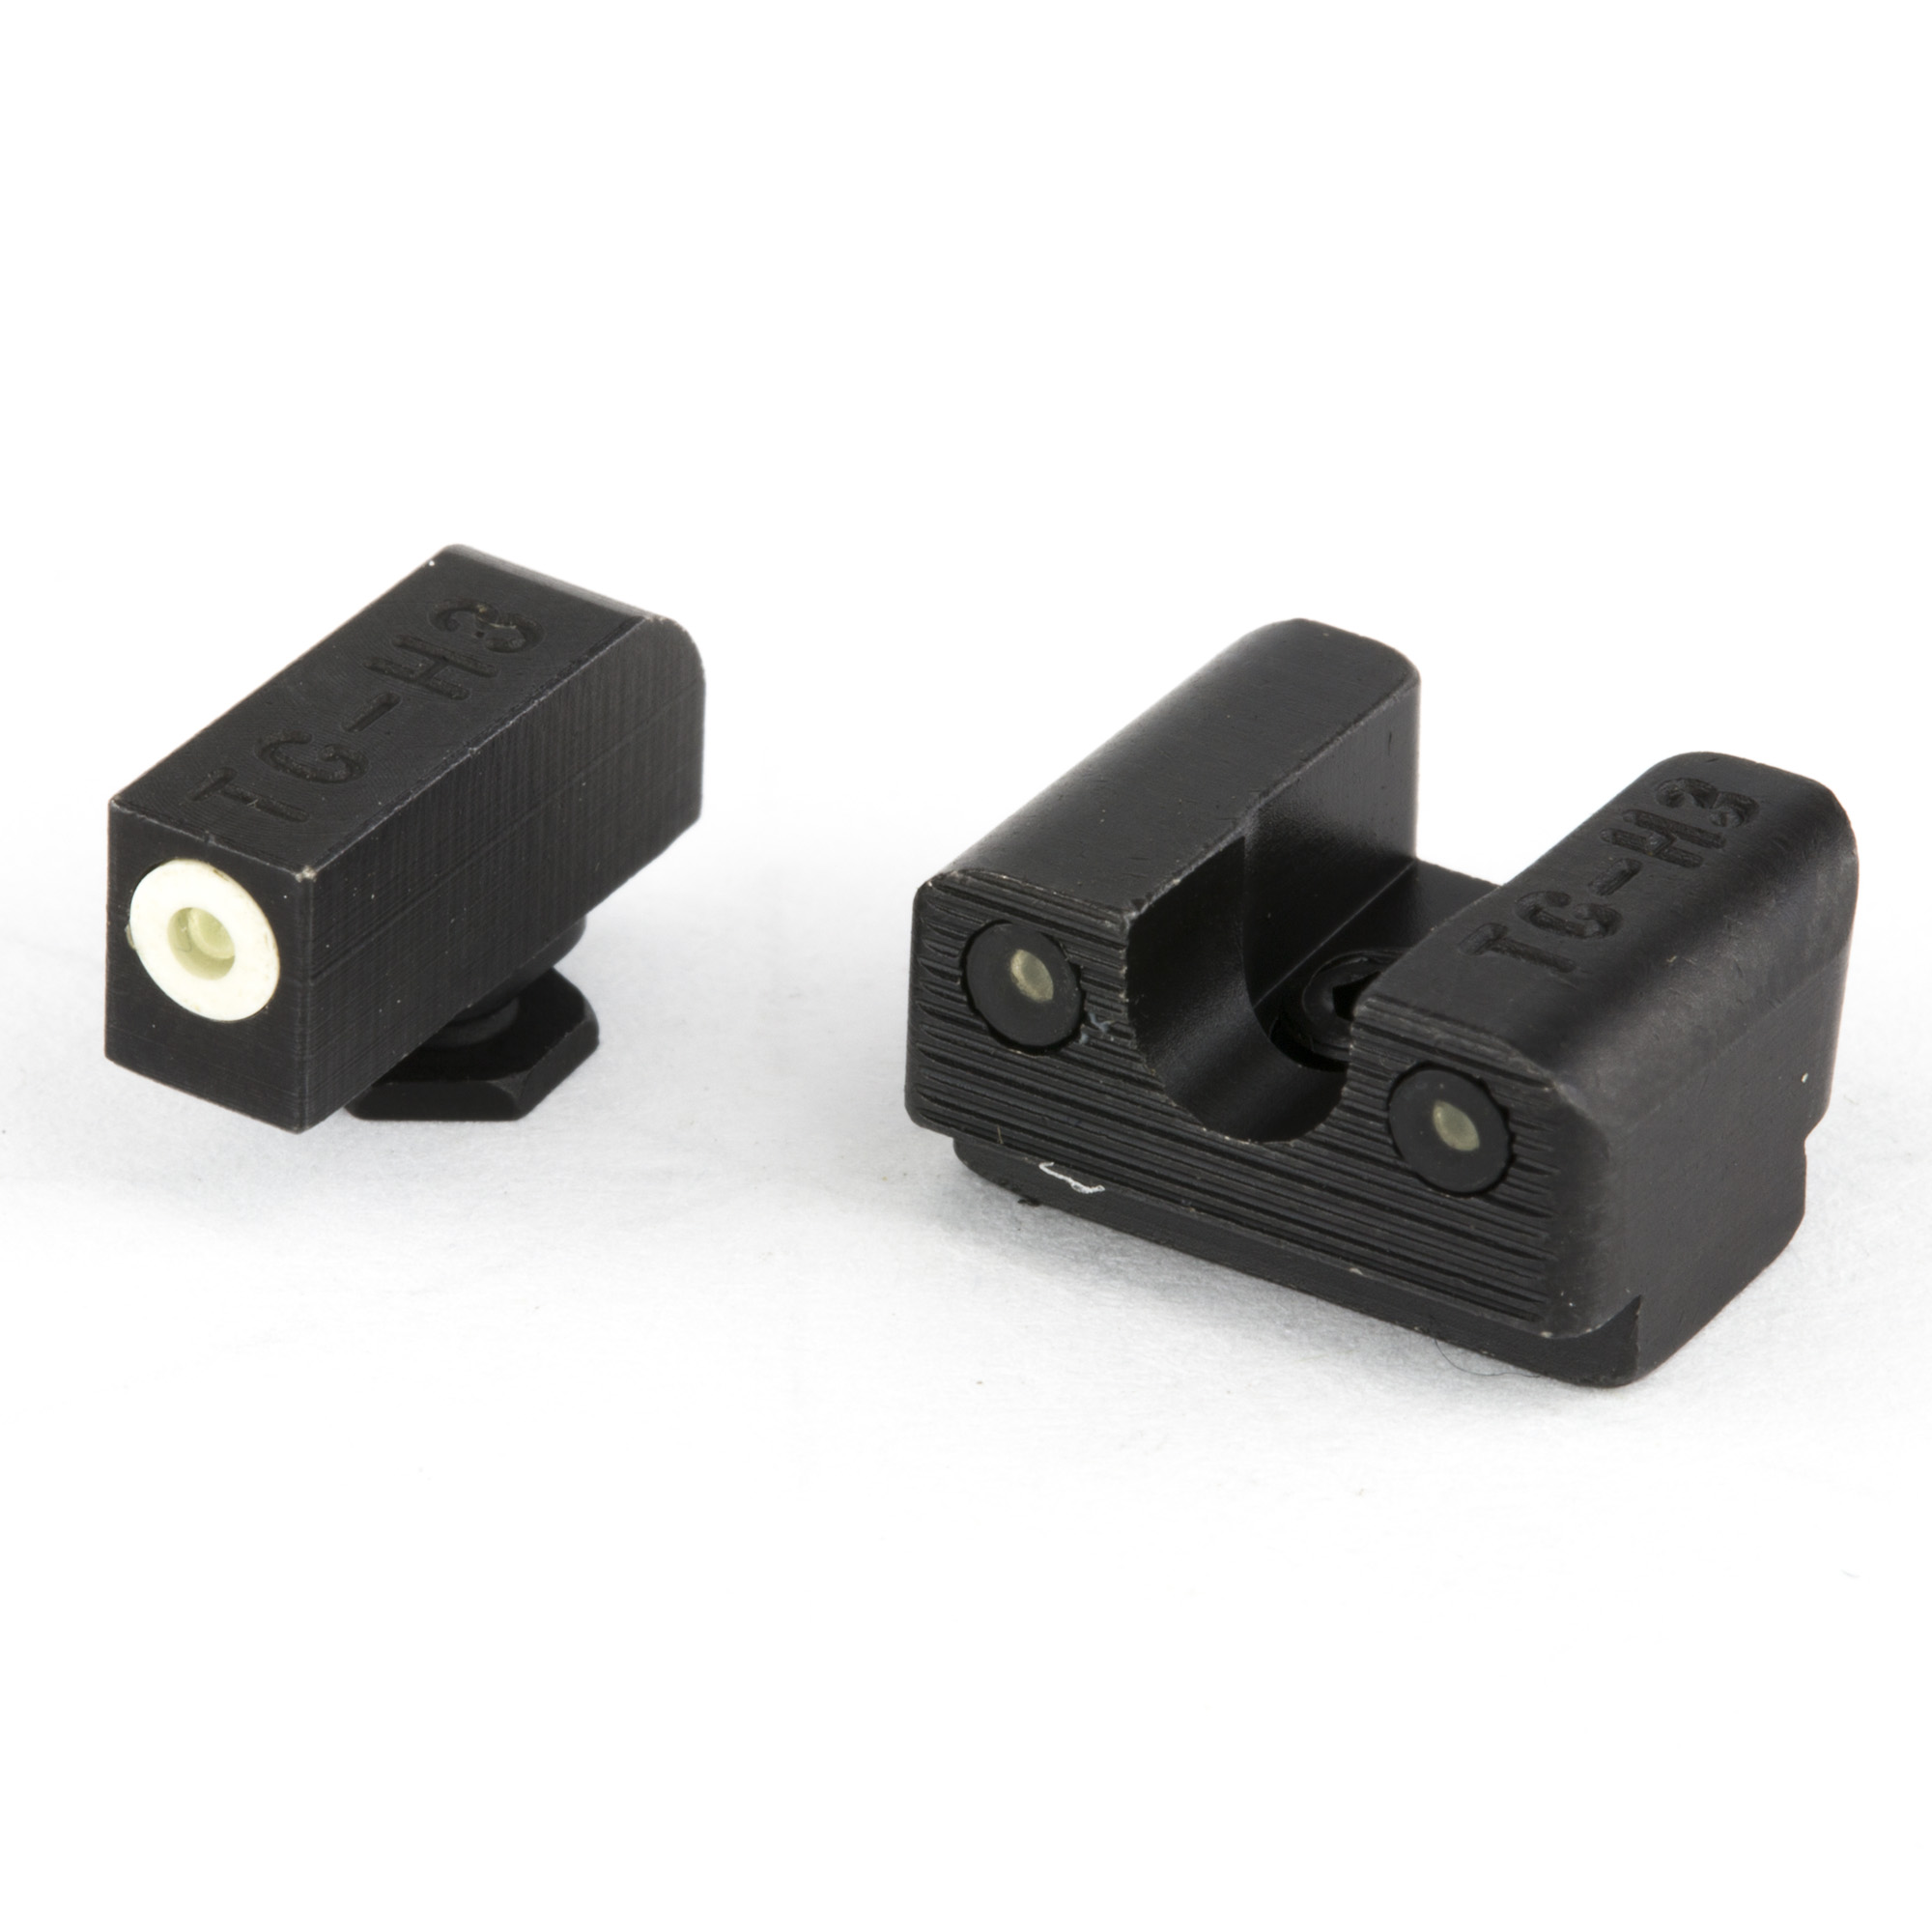 """Simply put"""" TRUGLO(R) manufactures bright ideas. When TFX(TM) PRO sights immediately took off and gained critical acclaim"""" they noticed that the world of TRITIUM night sights needed a similar upgrade. Starting with the brightness and durability of their original TRITIUM night sights"""" they added all of their PRO level features to give you the advantage when you need it the most."""